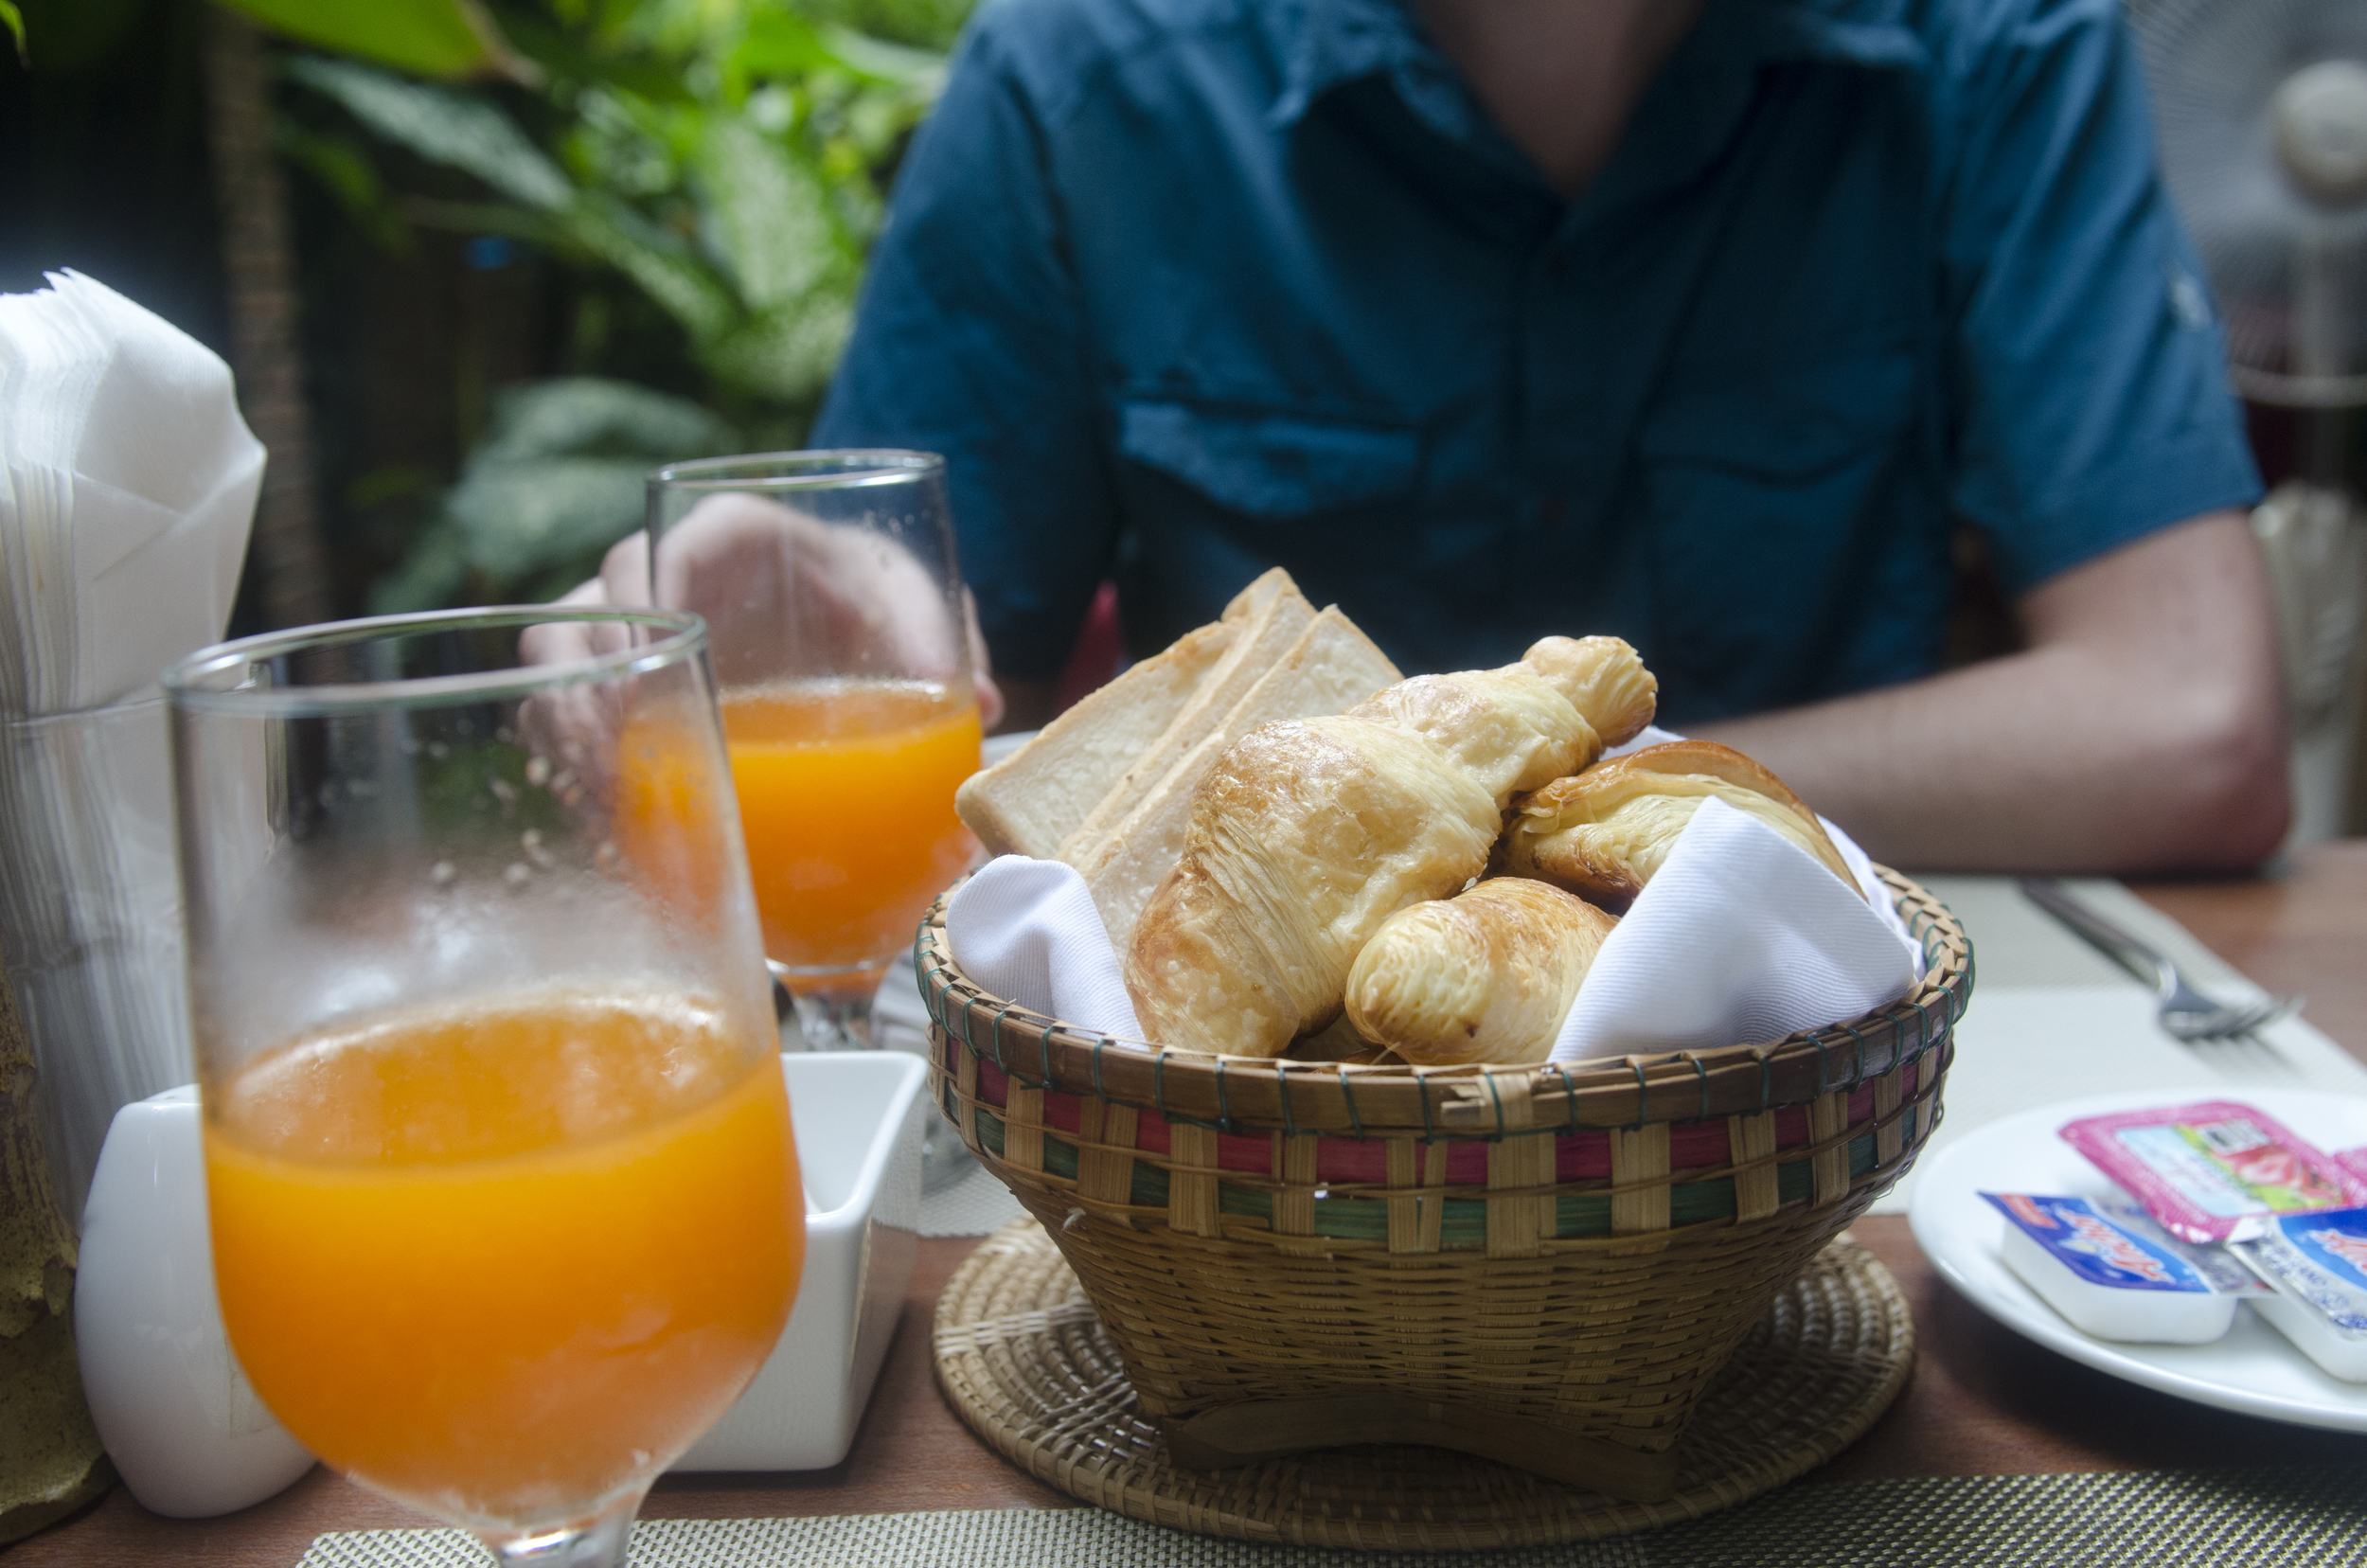 Freshly squeezed orange juice and warm pastries for breakfast